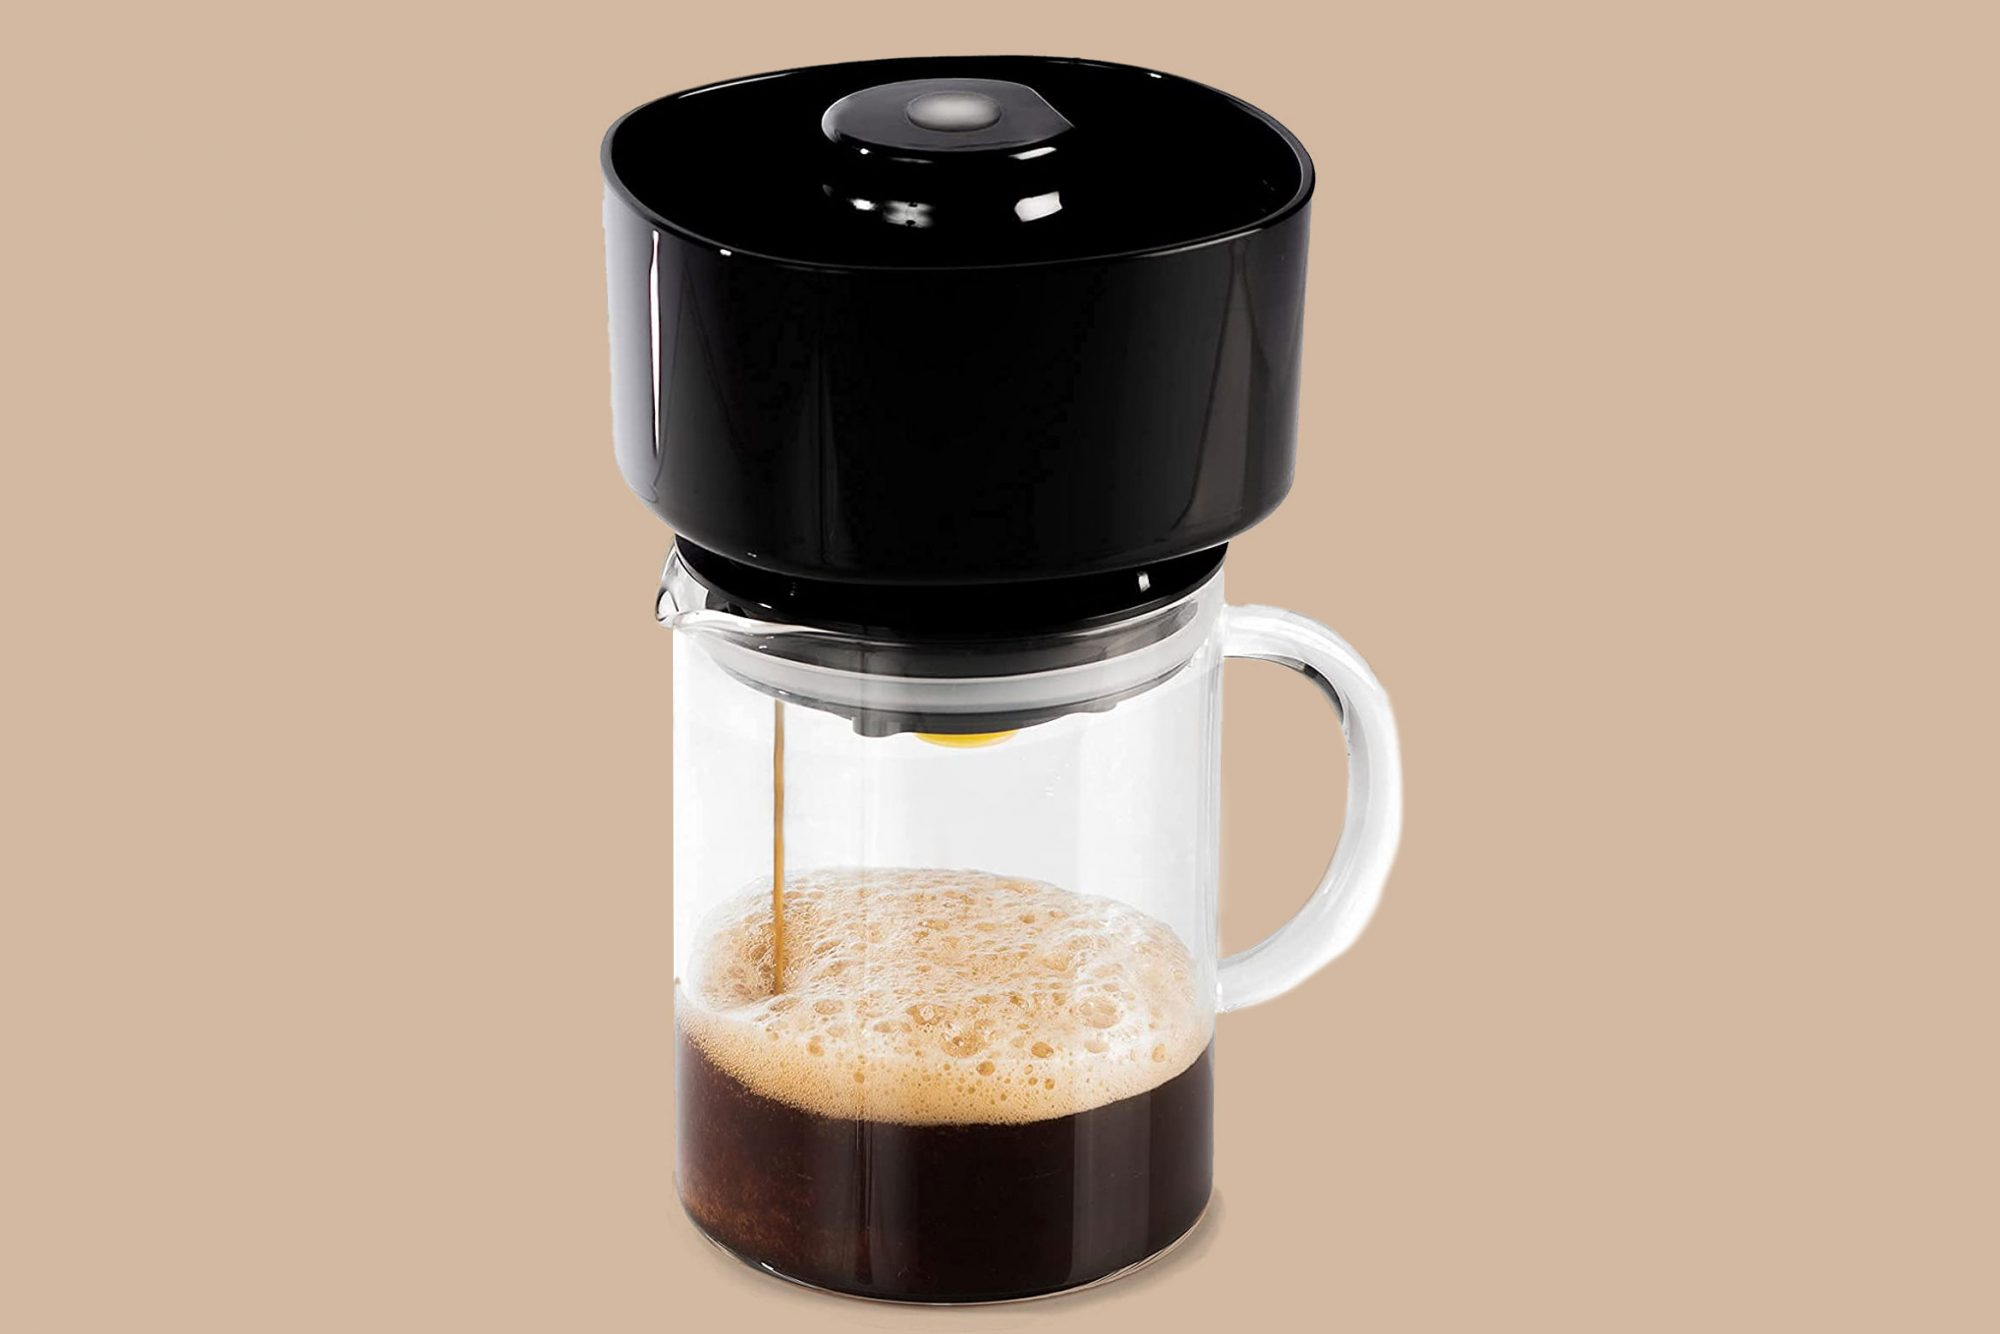 VacOne Air Brewer Hot Coffee and Cold Brew Maker In One